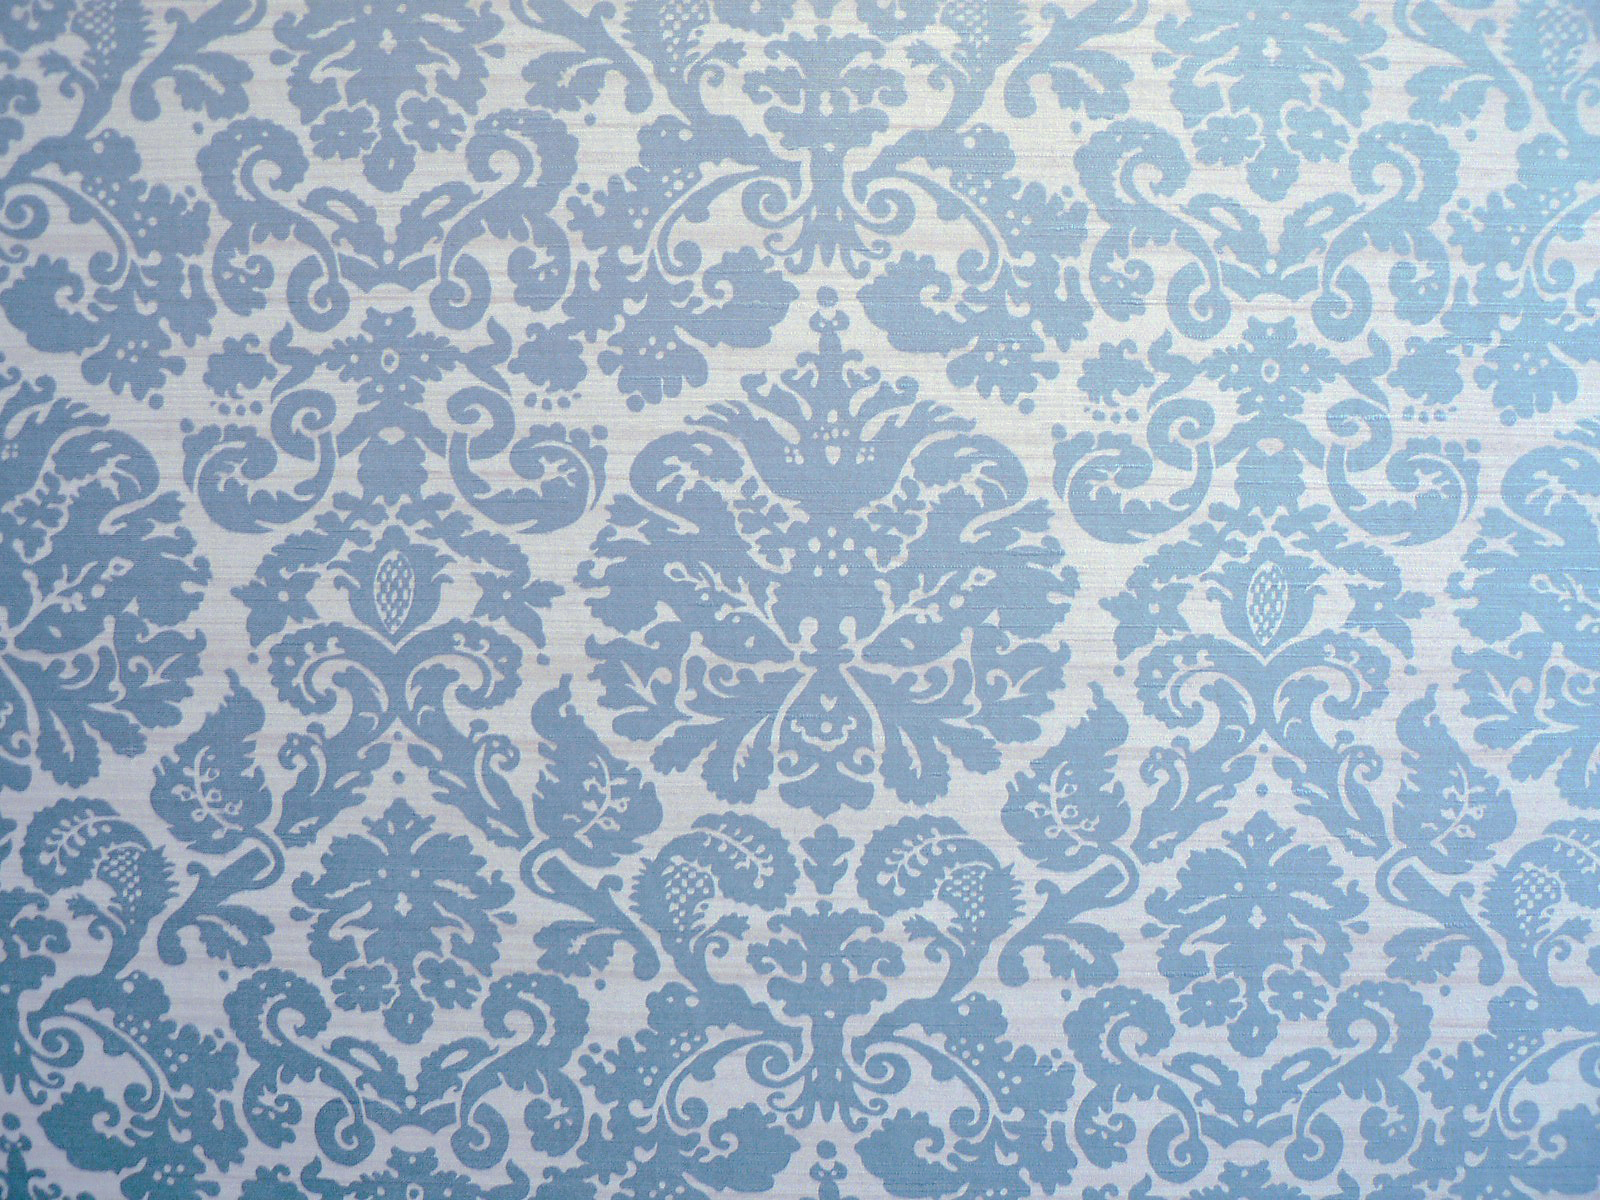 VictorianEdwardian Wallpaper design Graphic Design Research Blog 1600x1200